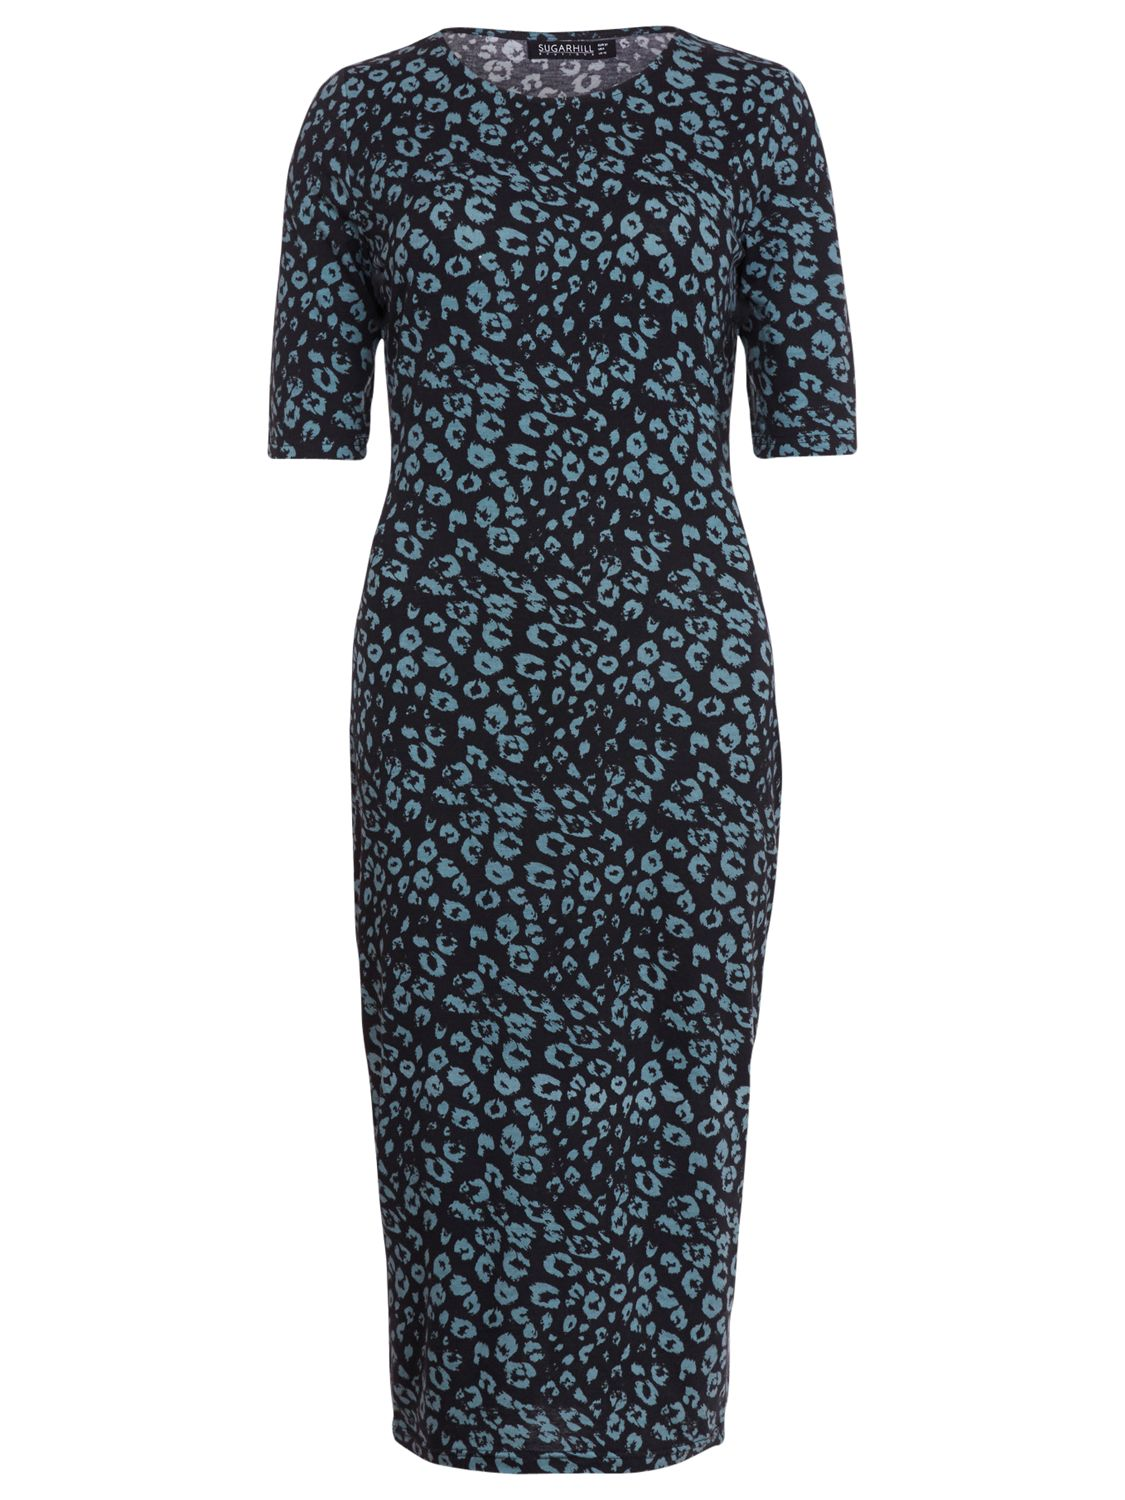 sugarhill boutique leopard bodycon dress teal, sugarhill, boutique, leopard, bodycon, dress, teal, sugarhill boutique, 8|16, clearance, womenswear offers, womens dresses offers, women, womens dresses, special offers, 1707624